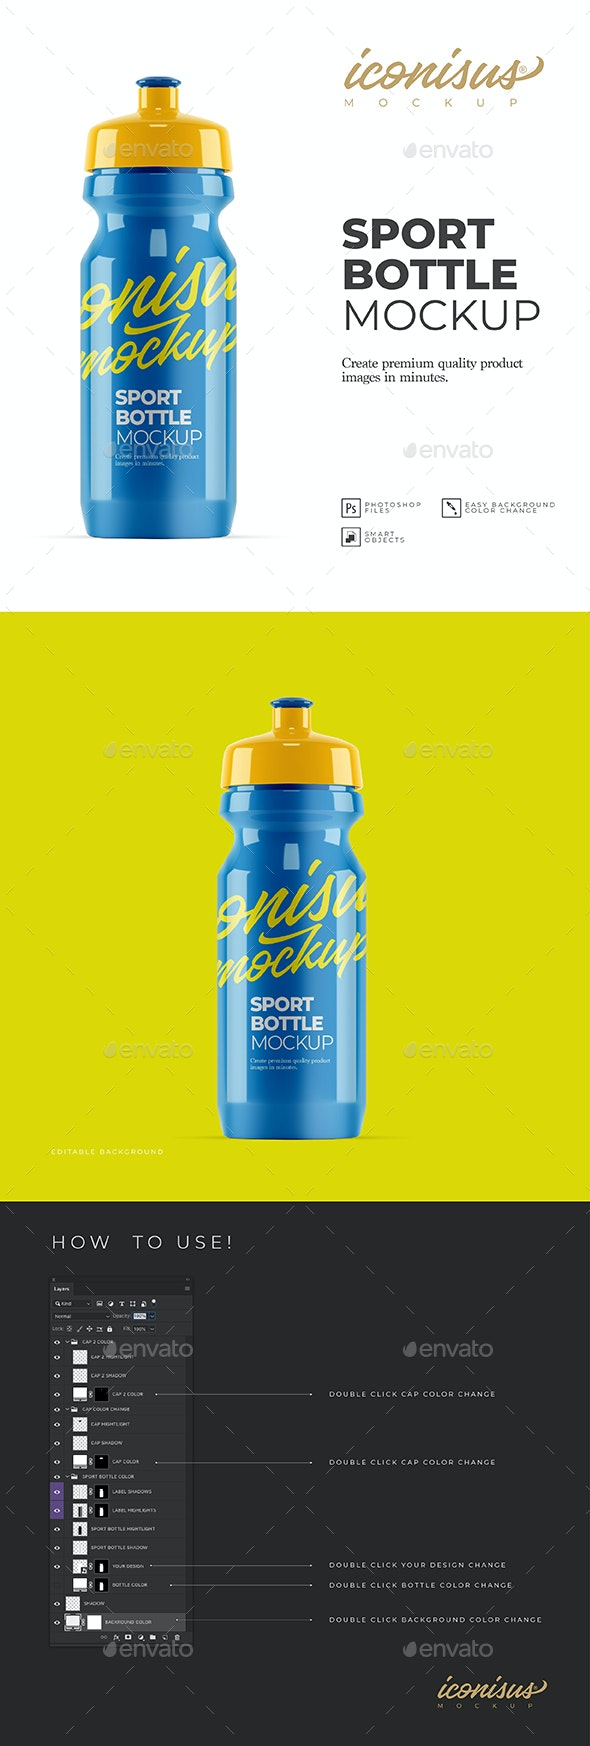 Sports Bottle Mockup Template - Product Mock-Ups Graphics